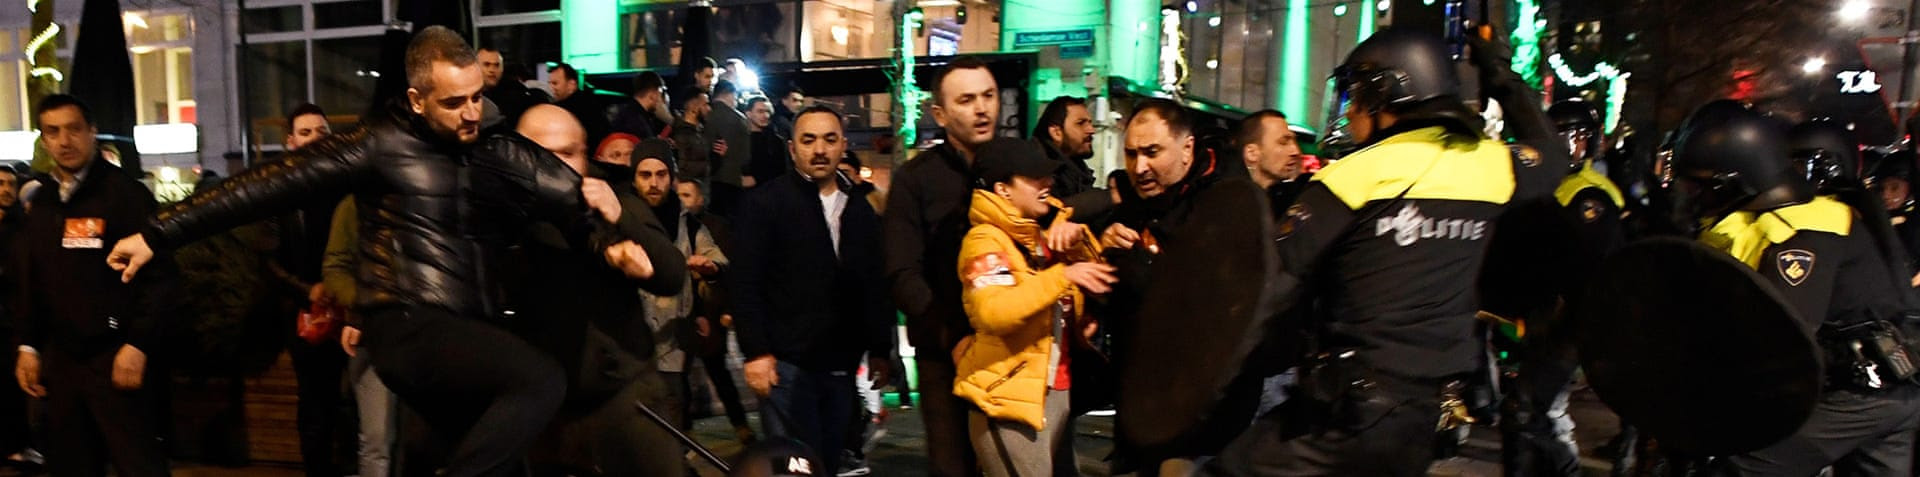 Yildirim says recent incidents show 'who Turkey's real friends are' [Umit Bektas/Reuters]